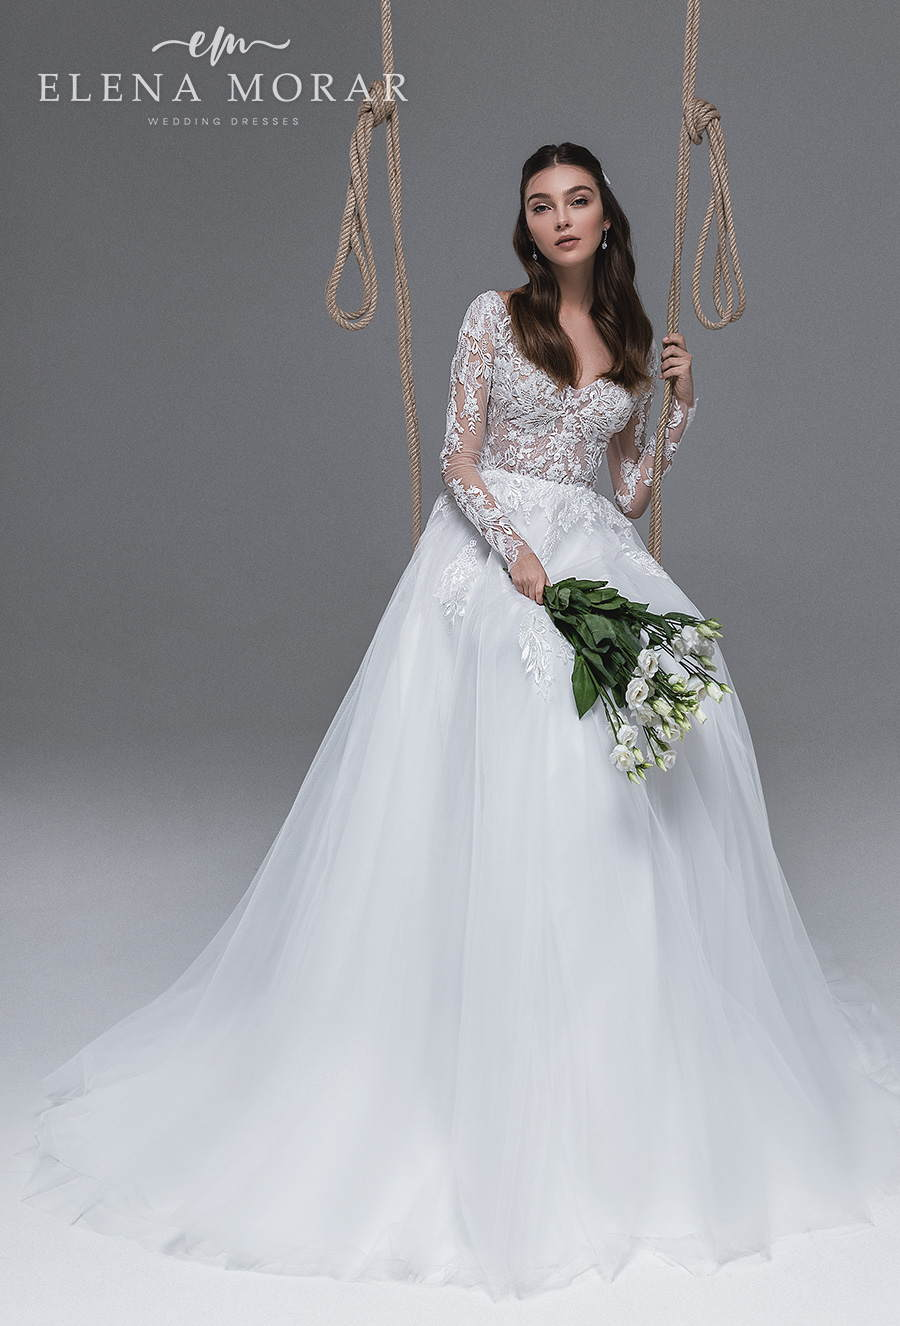 elena morar 2021 desert rose bridal long sleeves v neck heavily embellished bodice romantic soft a line wedding dress lace button back medium train (031) mv